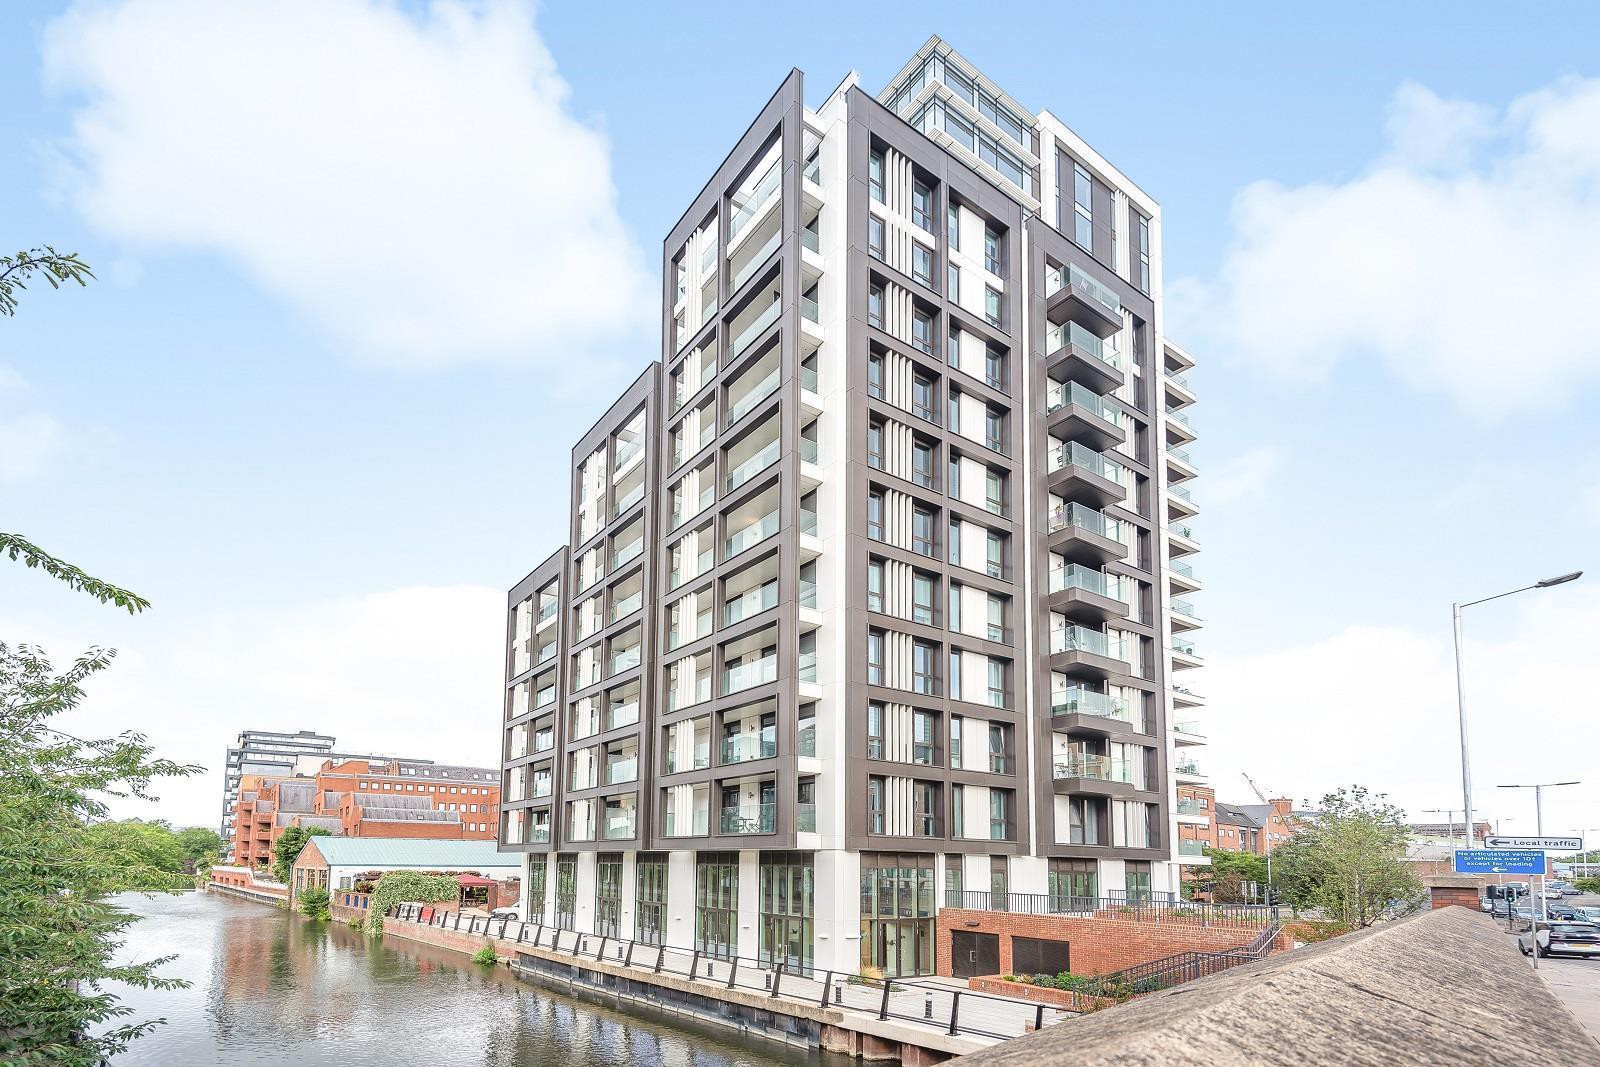 Flat 108 Verto, 120 Kings Road, Reading, RG1 3BY